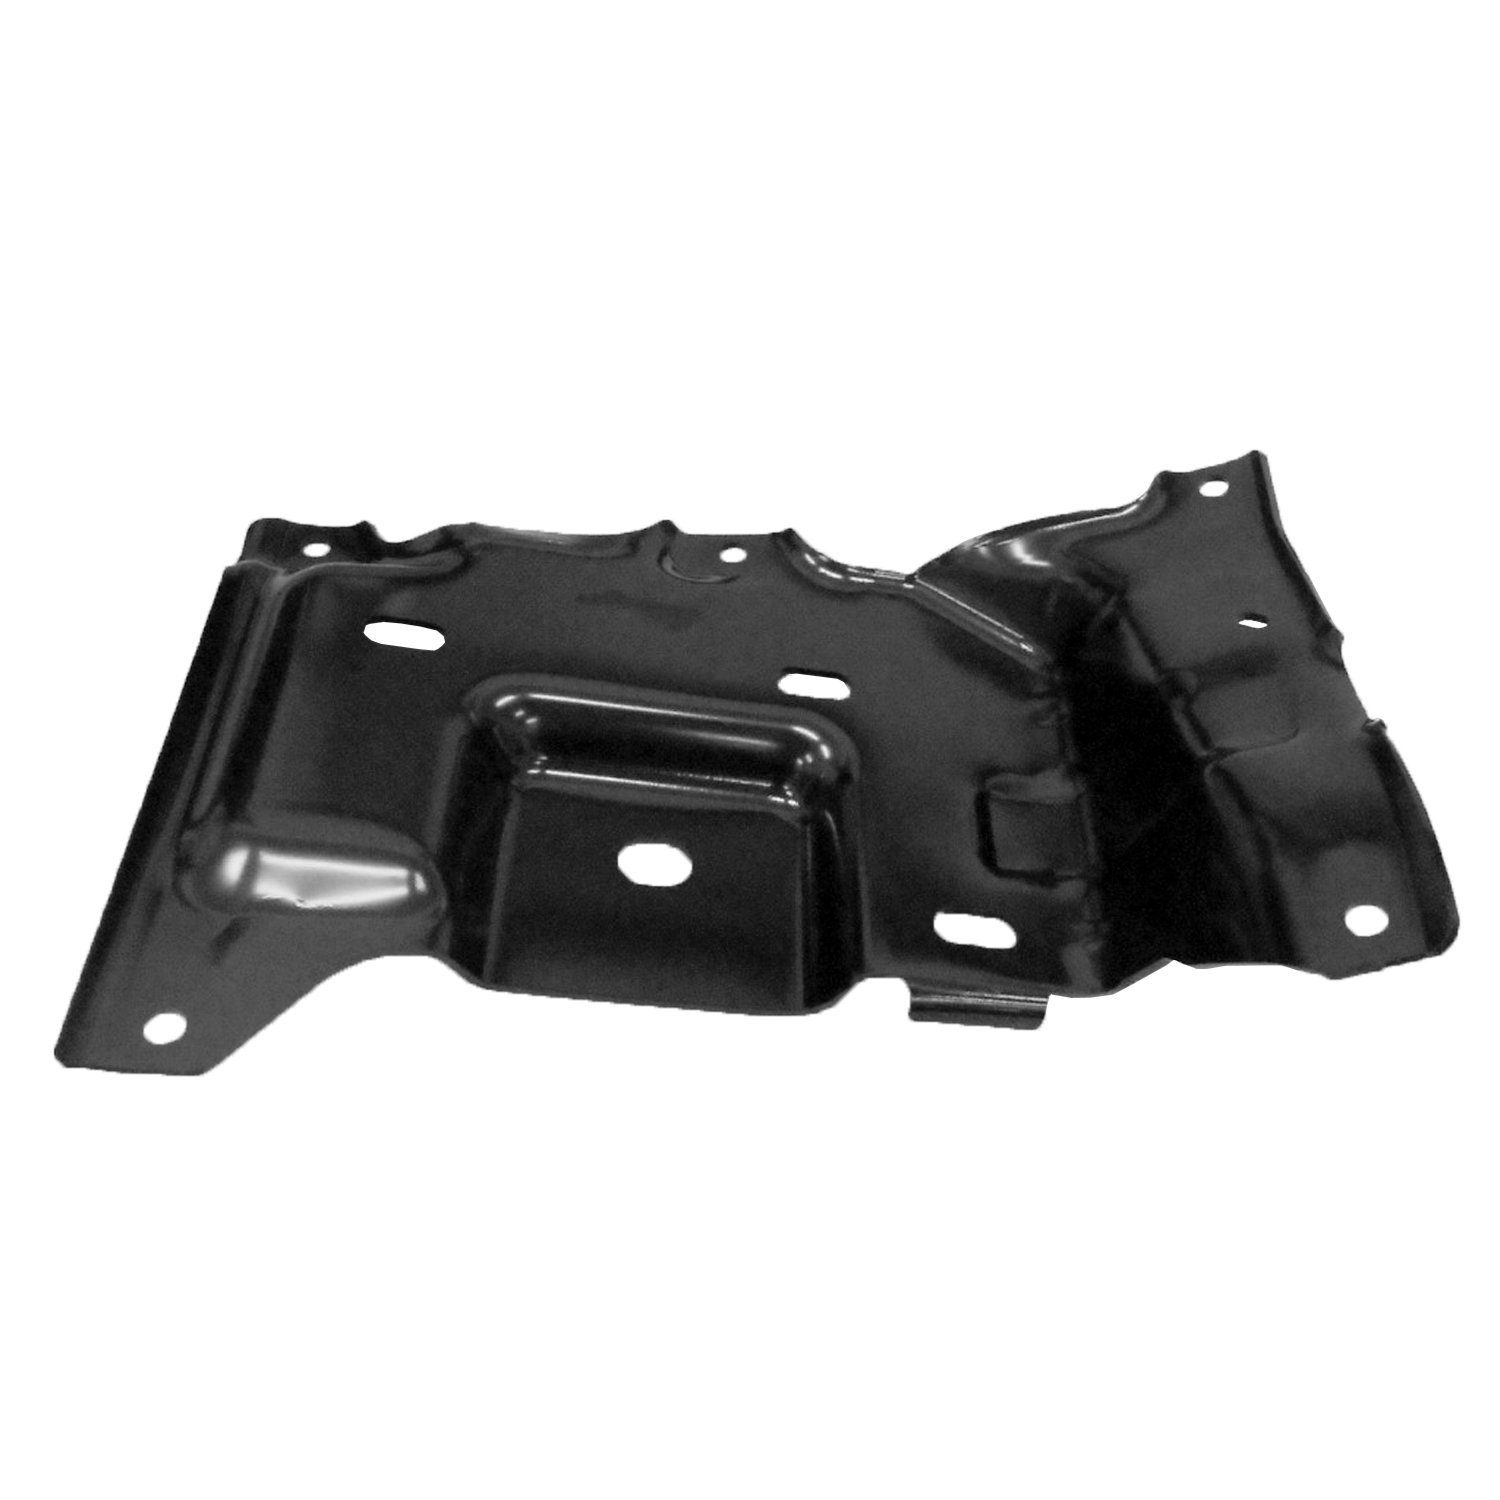 Crash Parts Plus Front Bumper Bracket for 2015-2016 Ford F-150 FO1067194